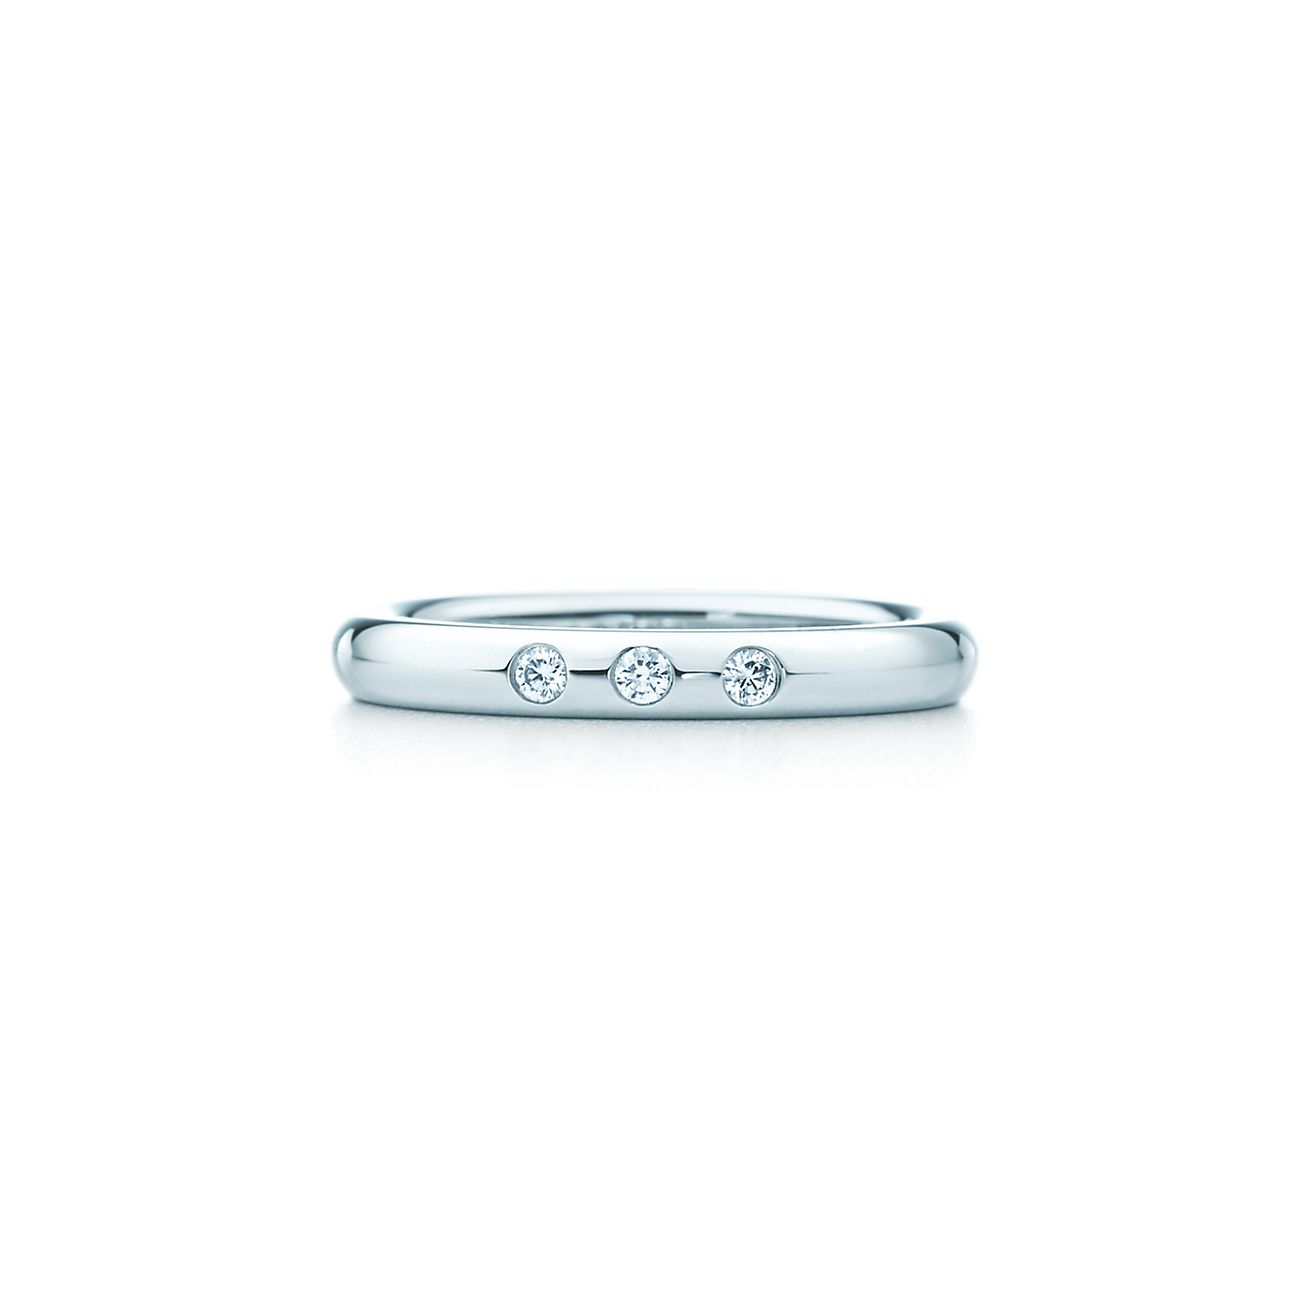 Elsa Peretti stacking band ring in platinum - Size 6 1/2 Tiffany & Co.